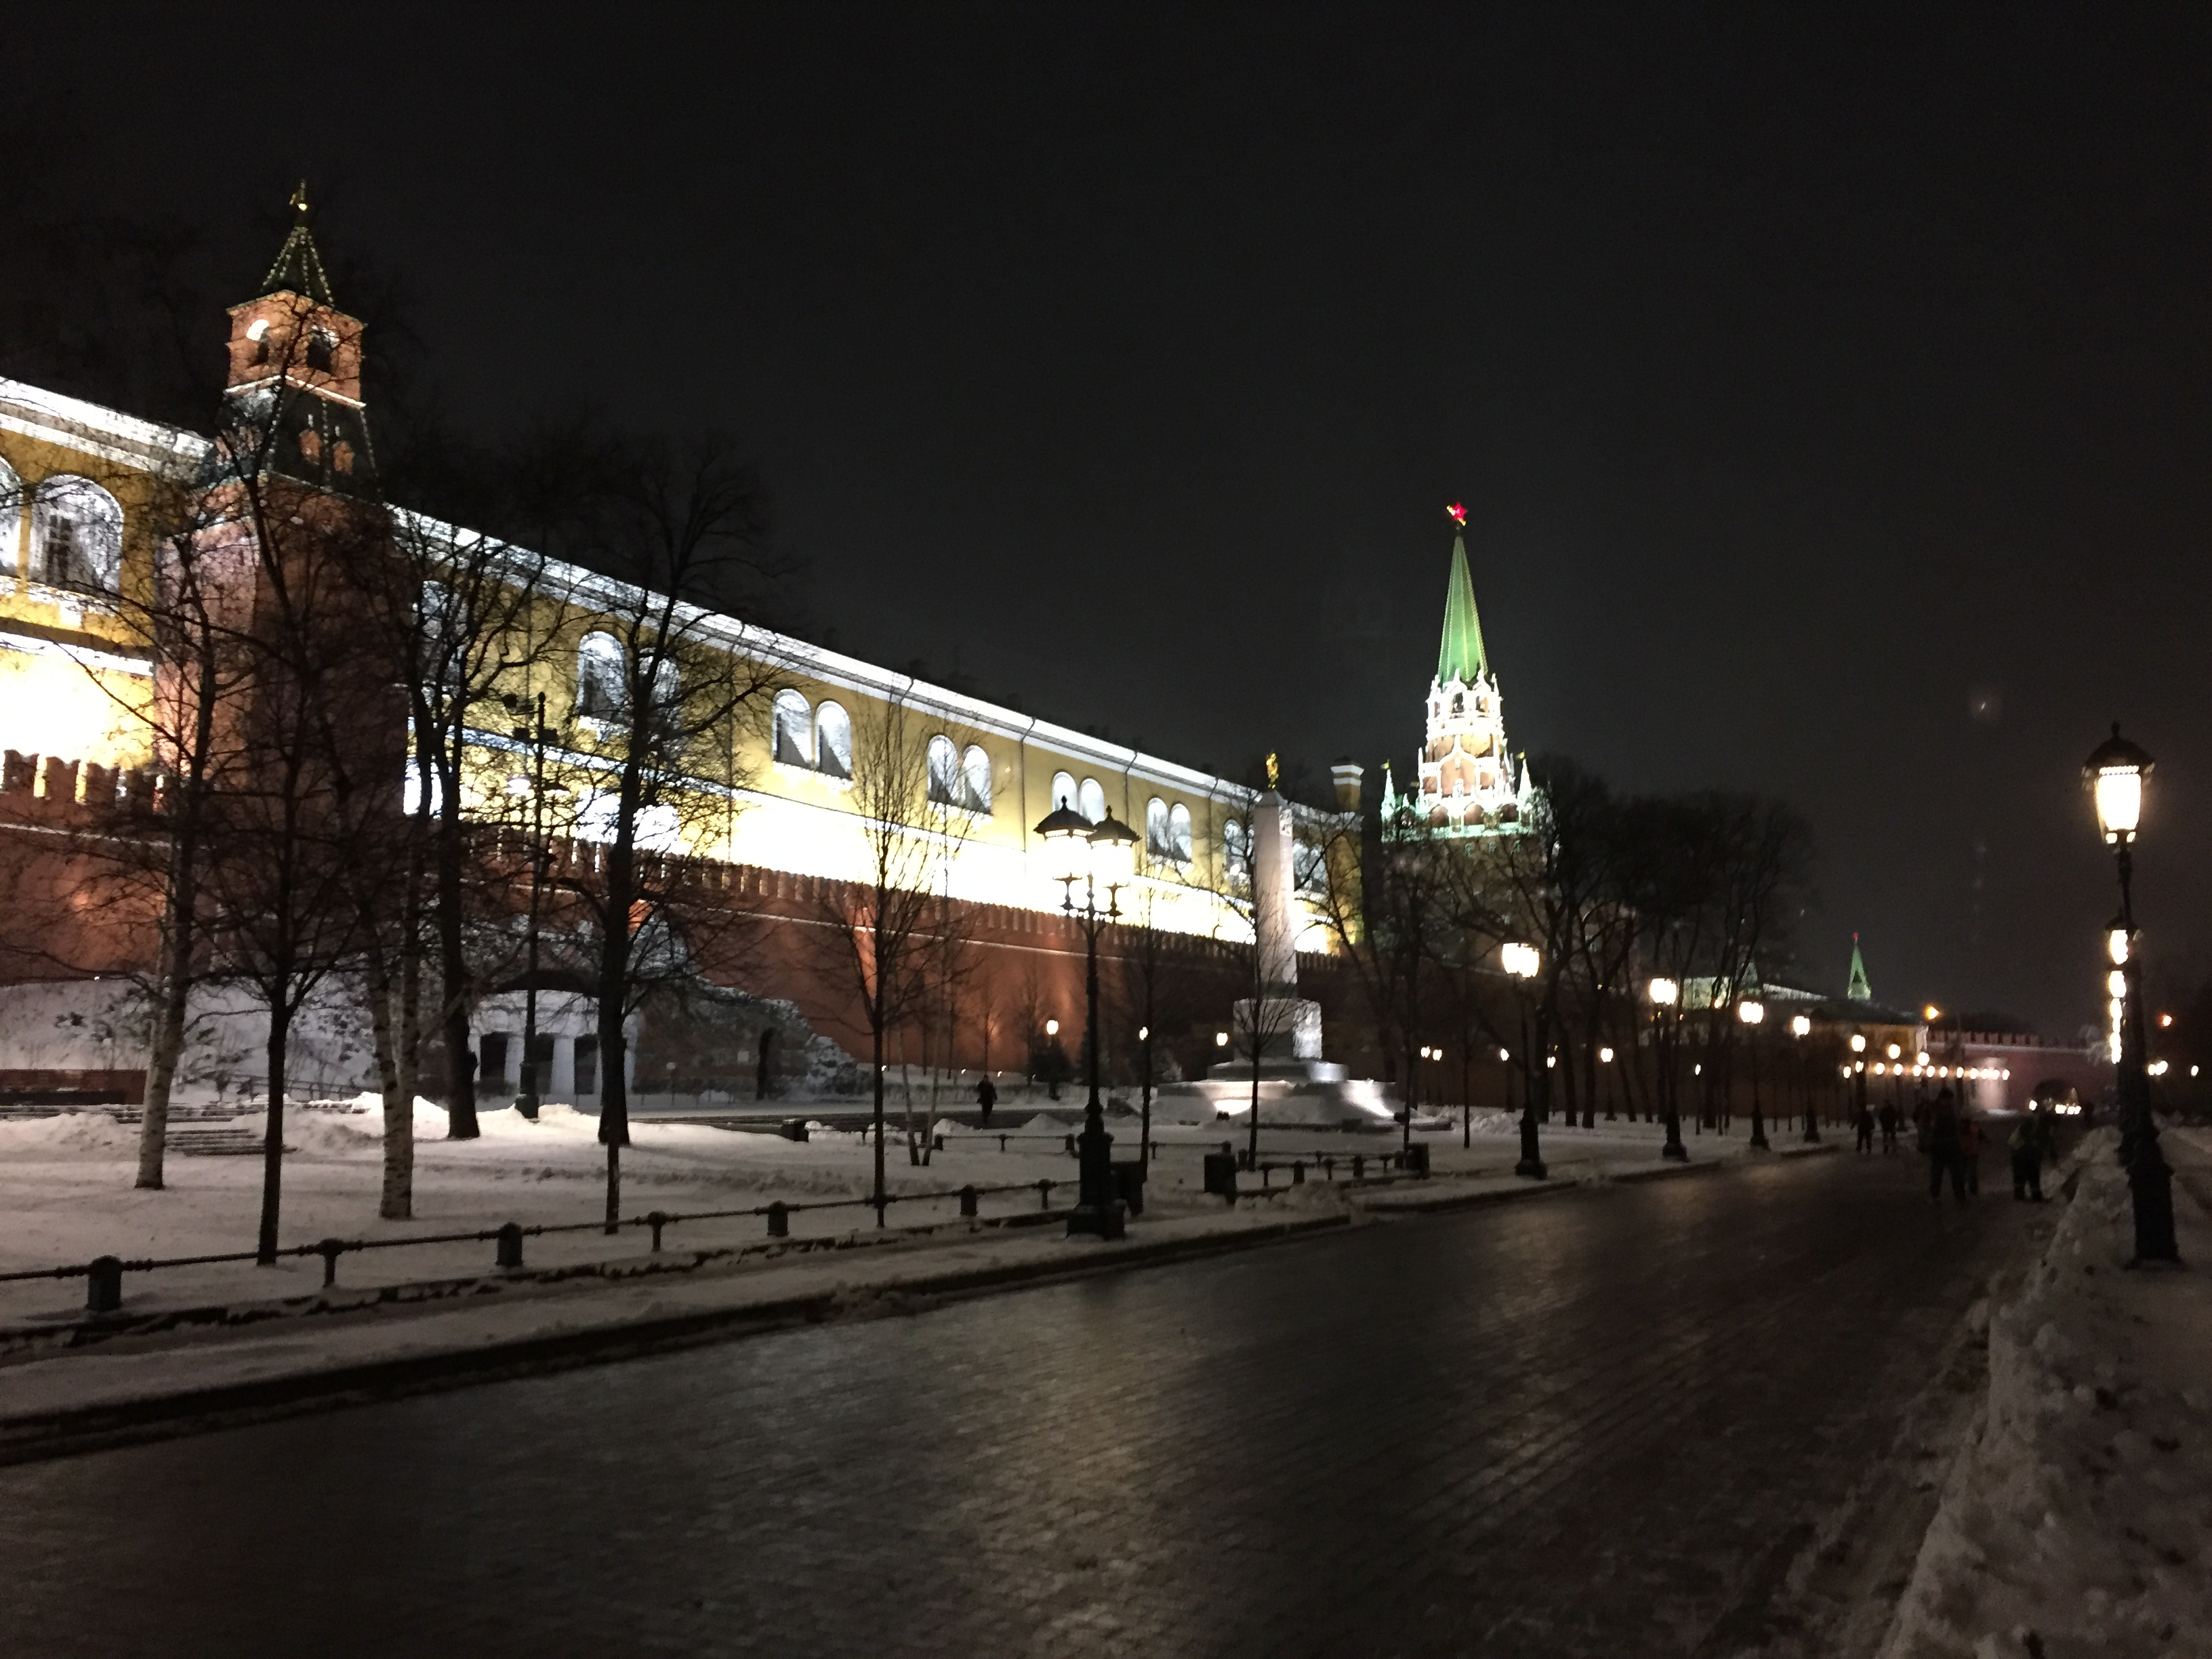 Tomb of the Unknown Soldier outside the Kremlin wall, Dec. 6, 2016. (Photo by Robert Parry)